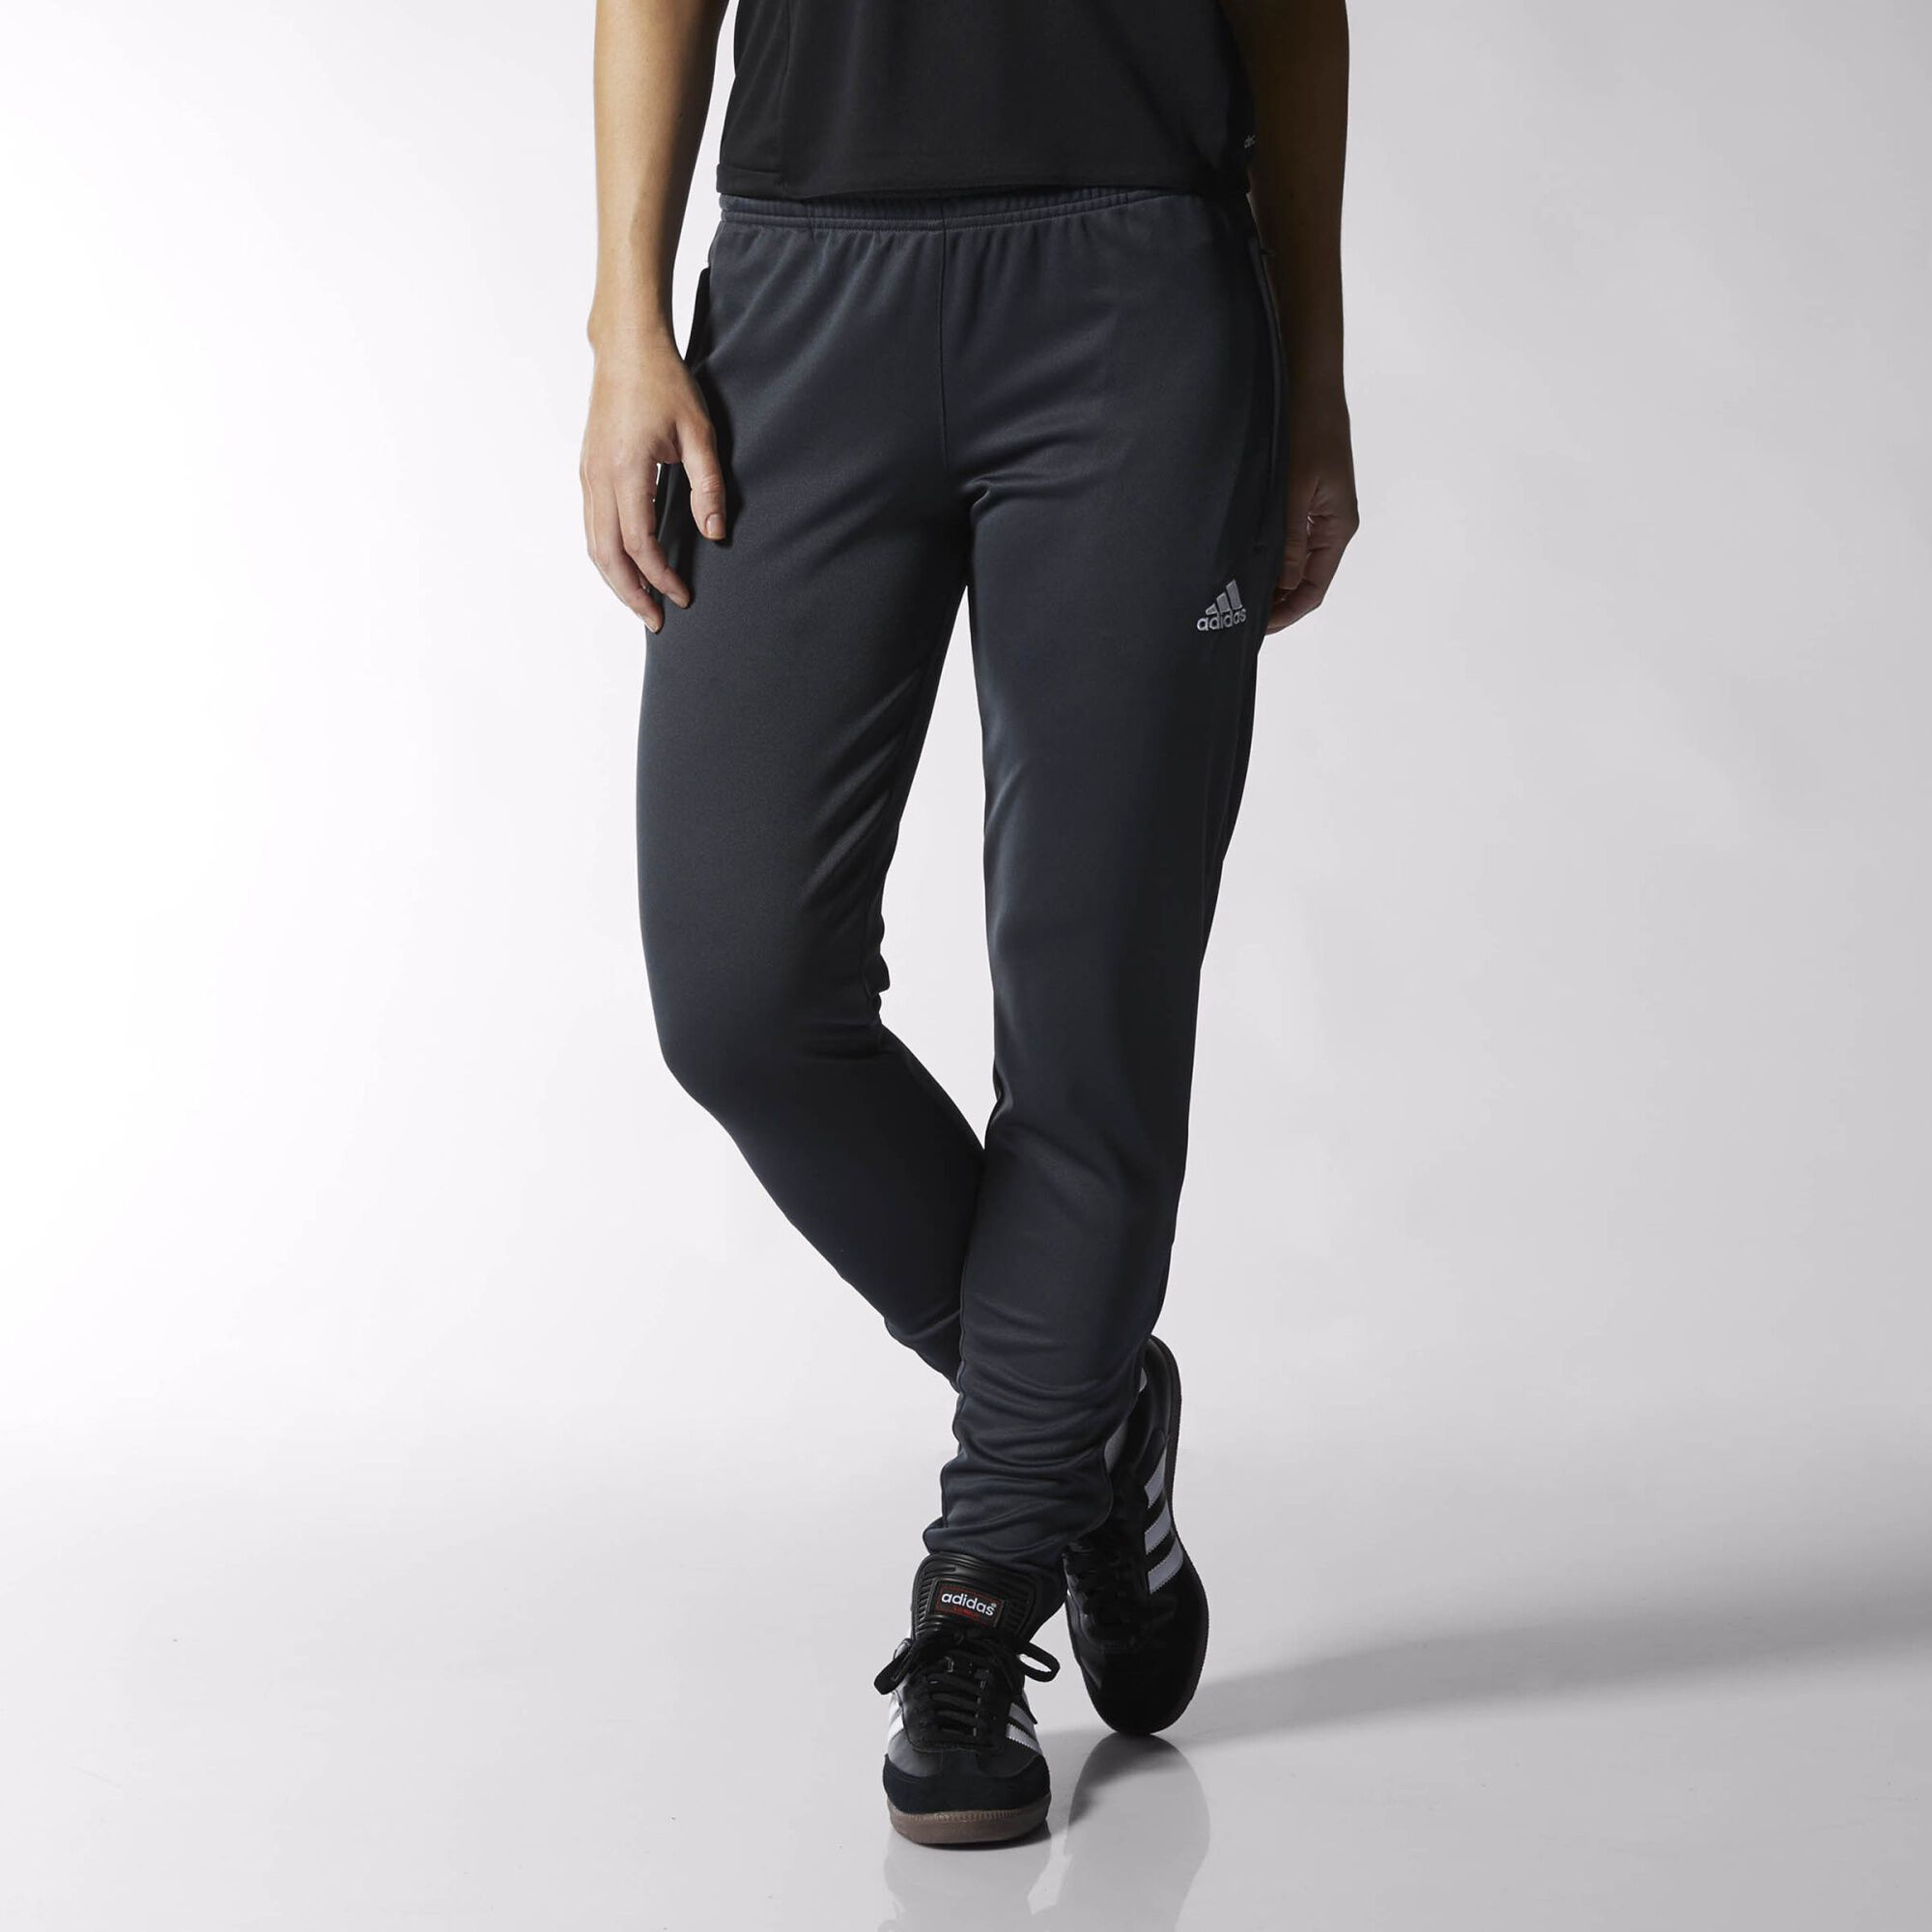 Different Pants For Women